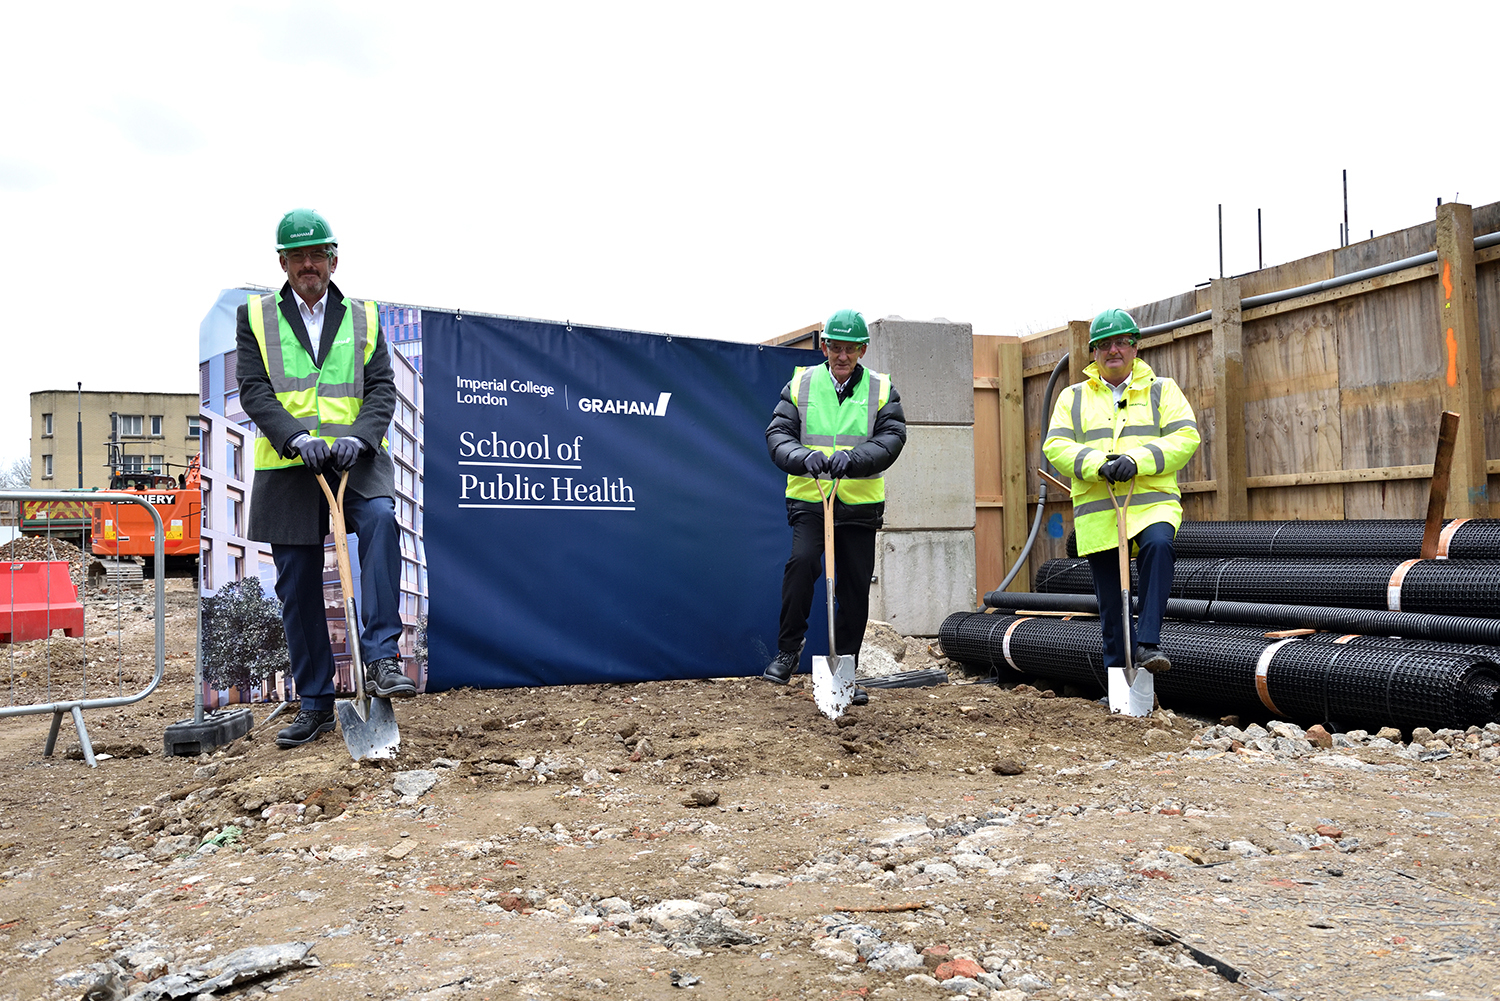 GRAHAM breaks ground at Imperial College London's White City Campus image